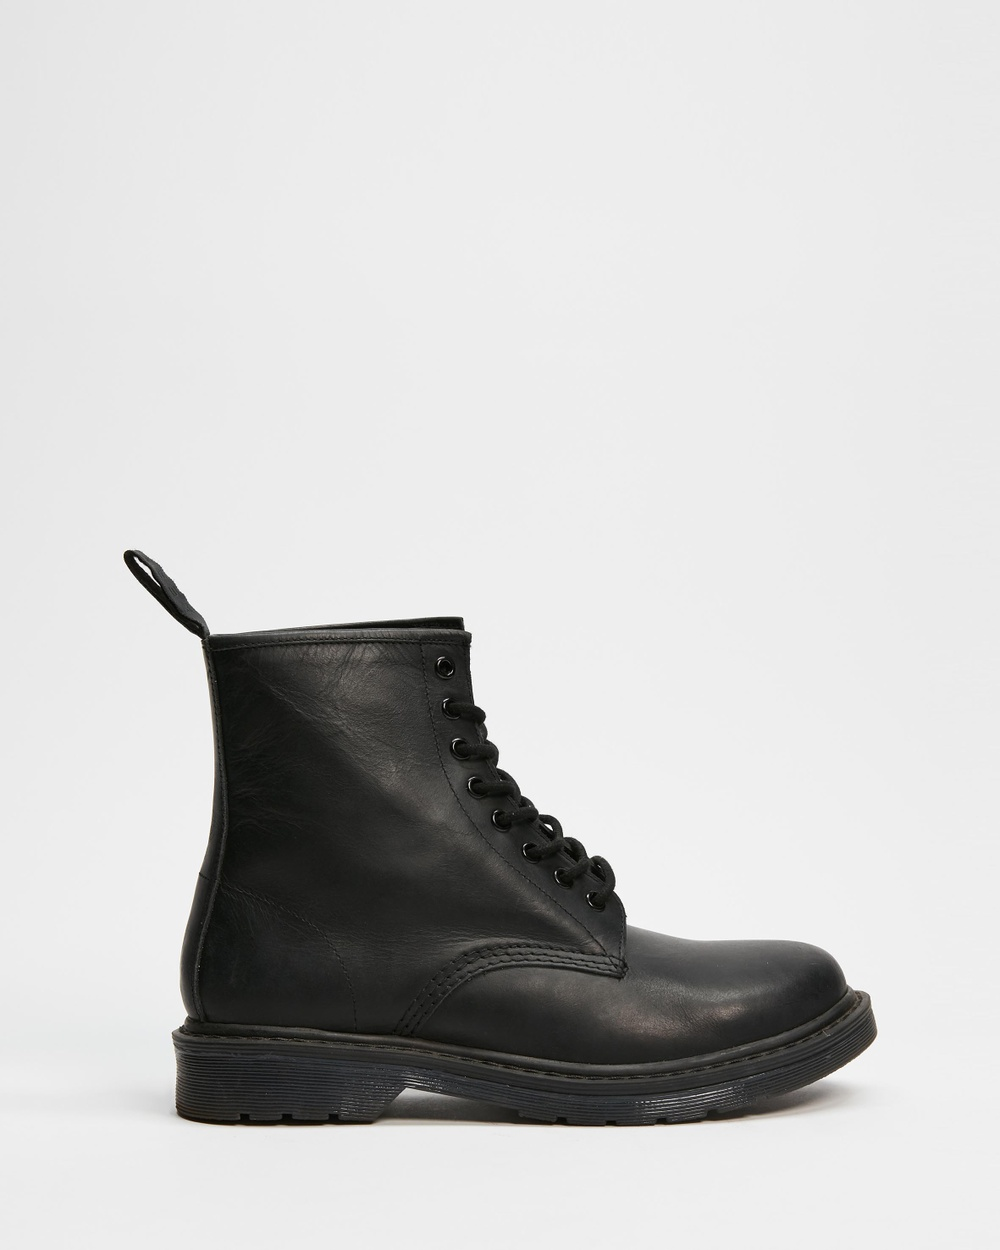 AERE Leather Lace Up Boots Black Lace-Up